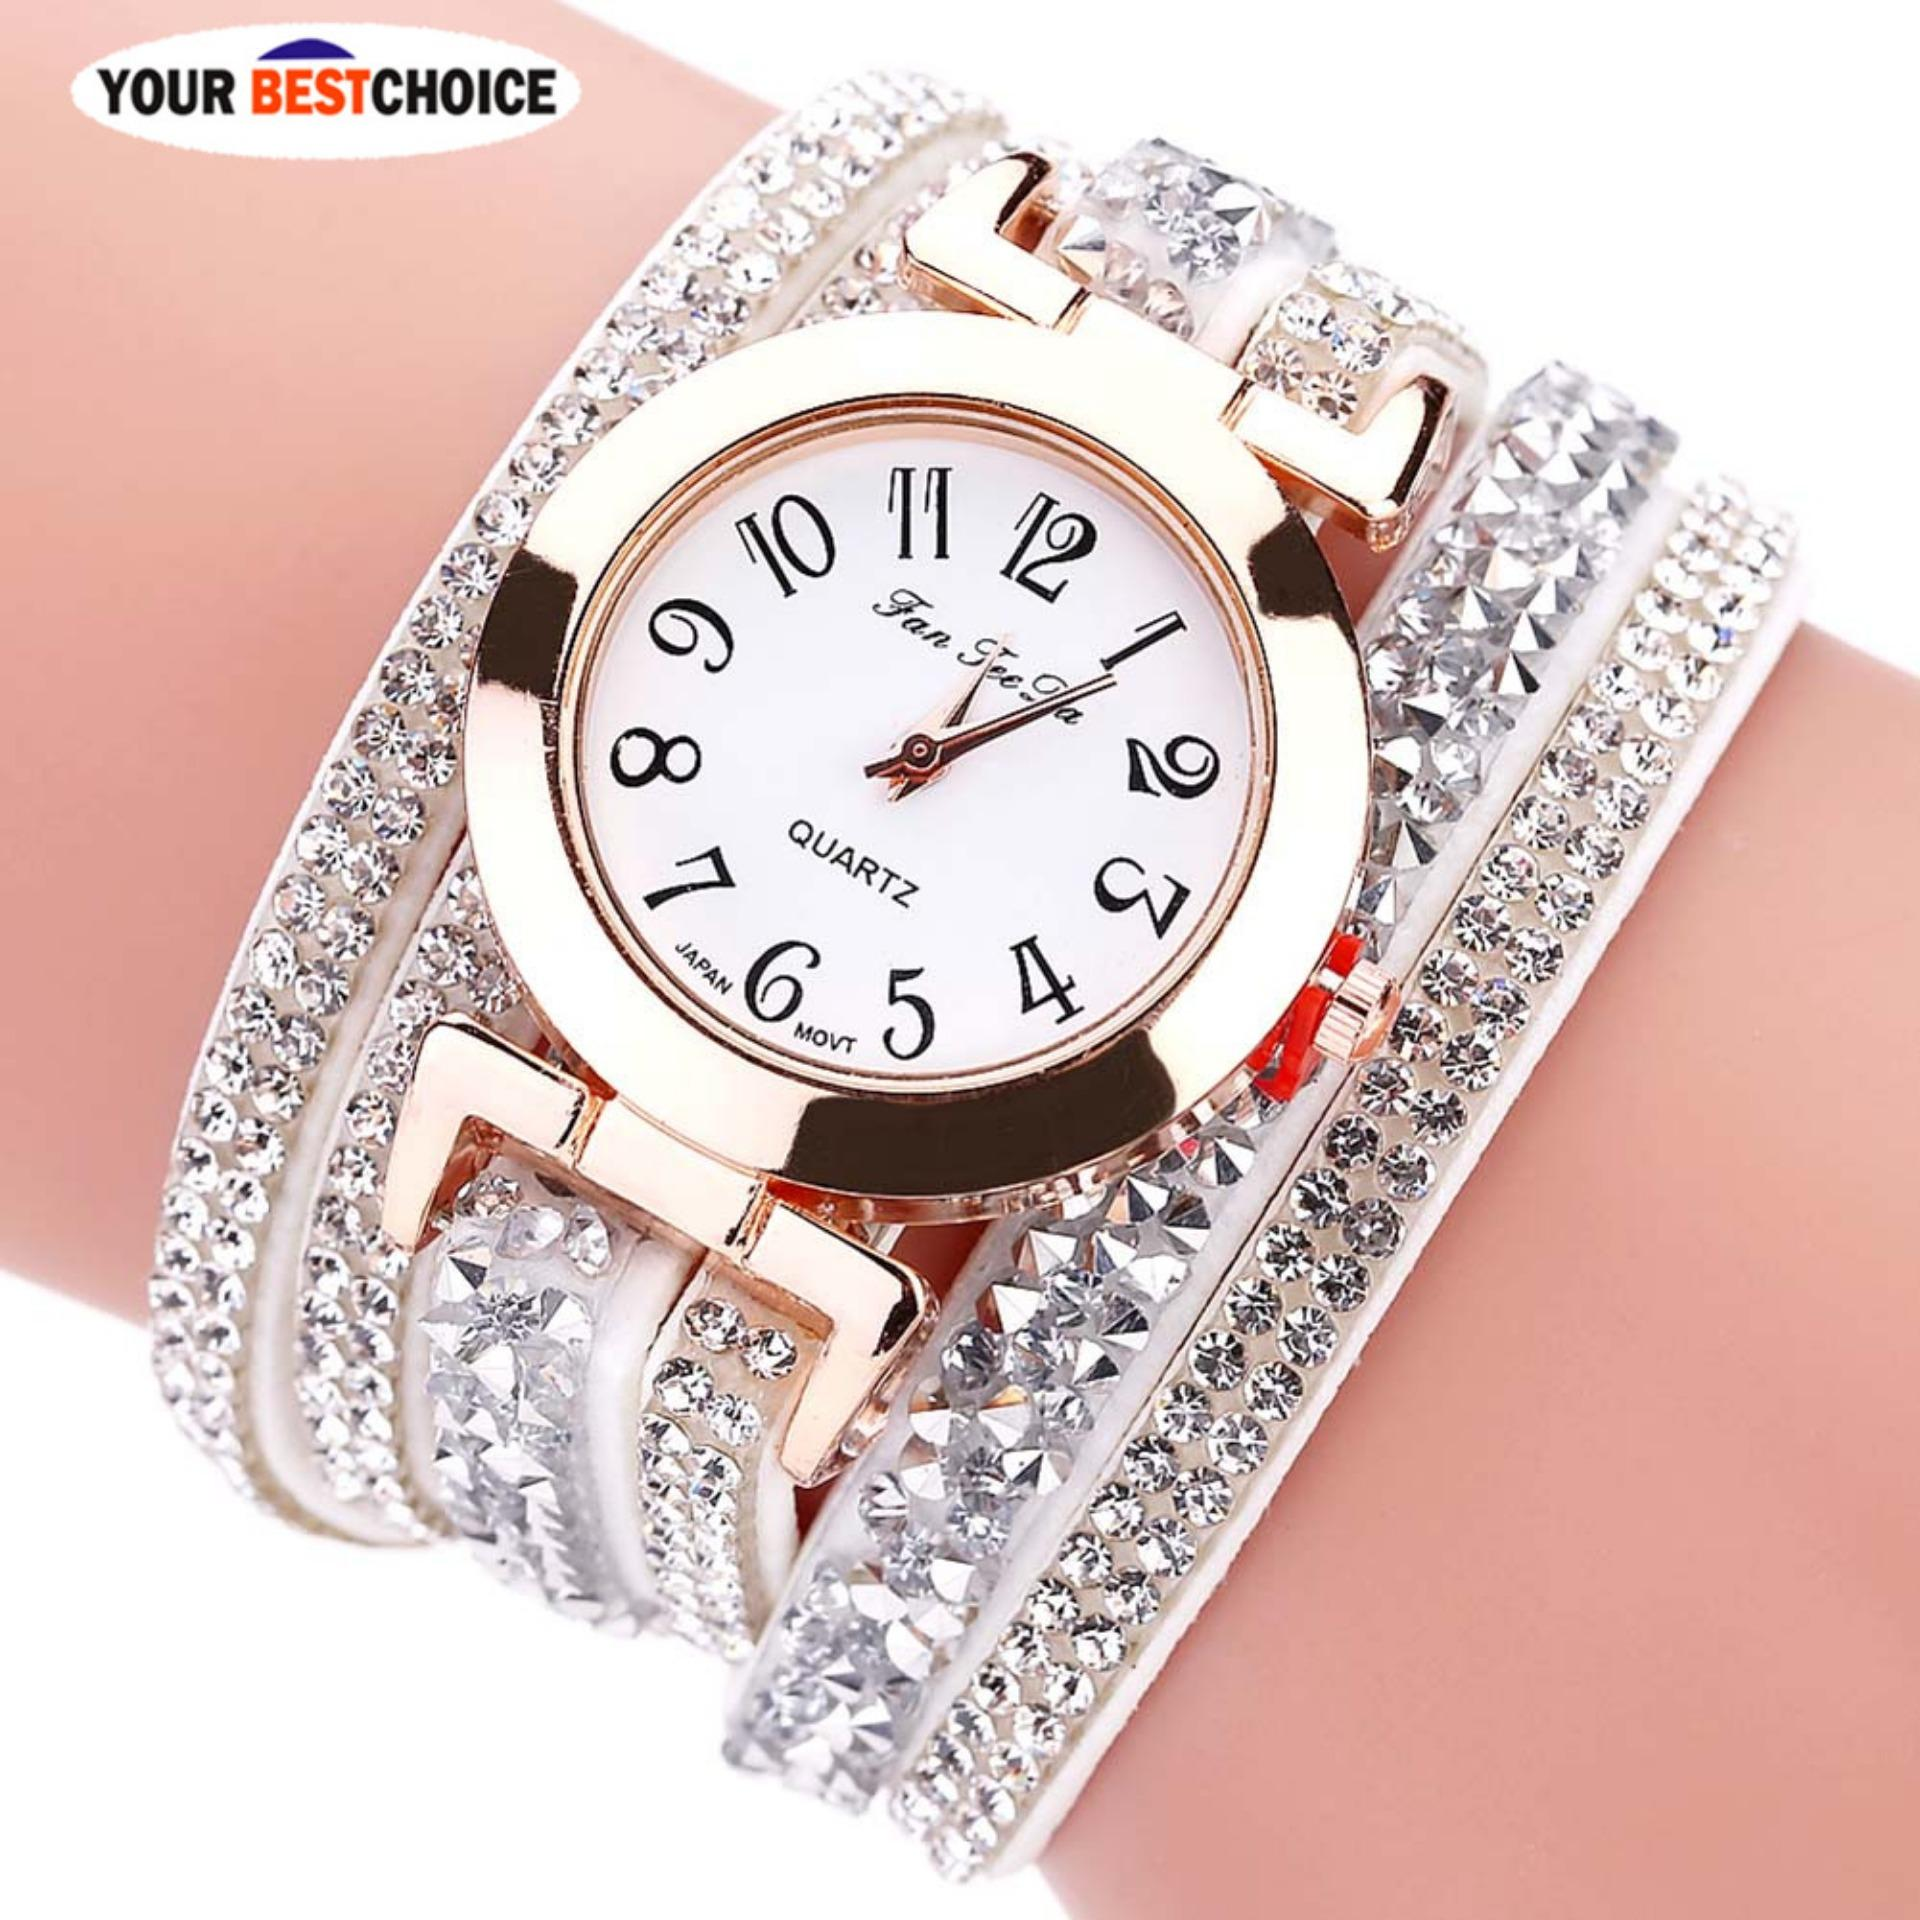 YBC Fashion Women Multi Lapisan Gelang Watch Crystal QUARTZ Arloji Hadiah-Intl